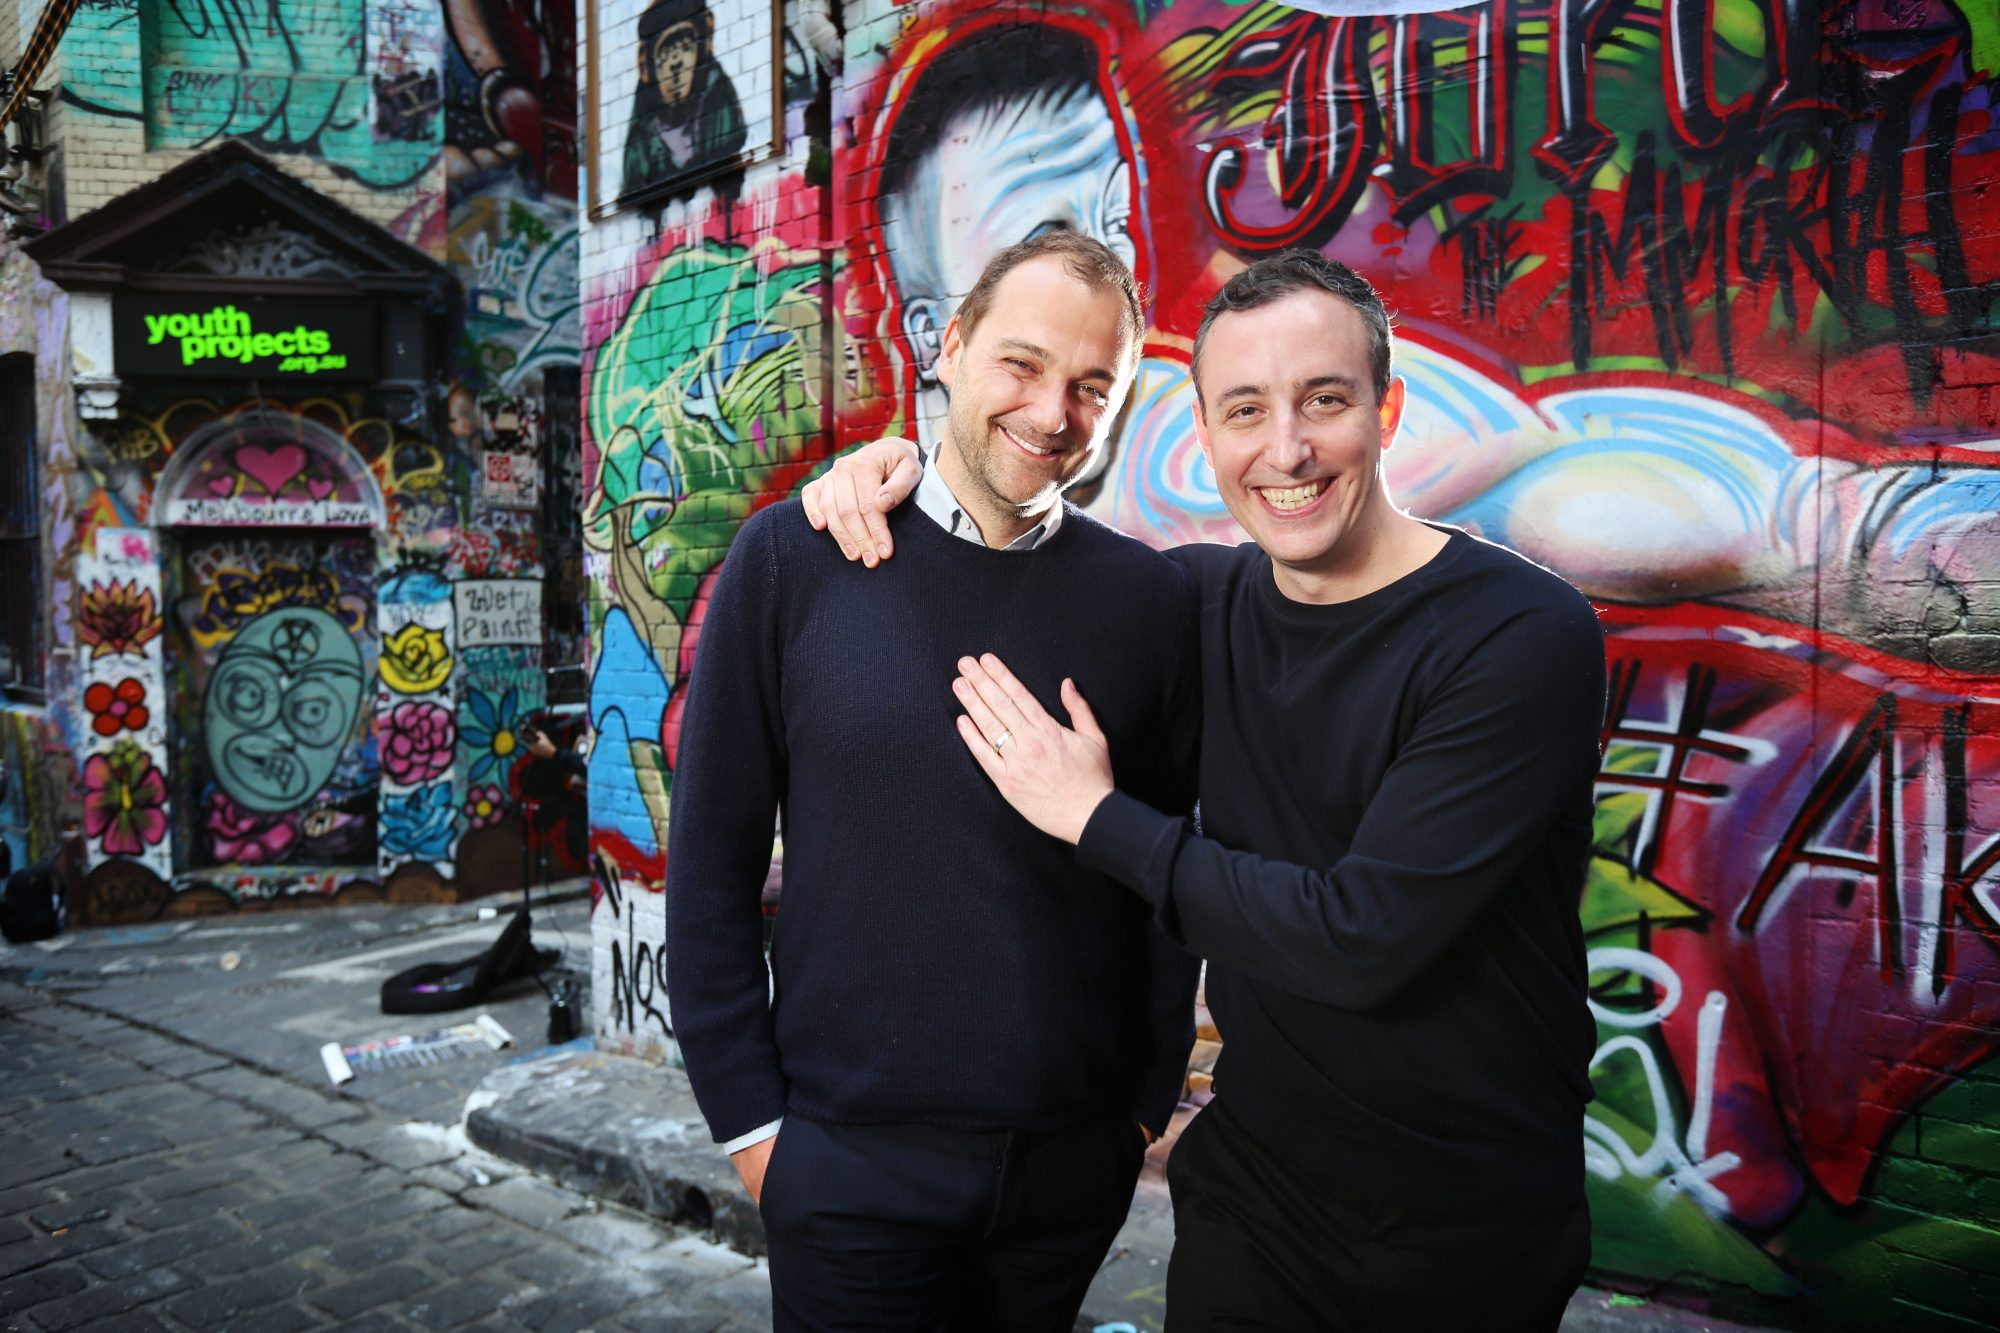 Eleven Madison Park Owners Will Guidara and Daniel Humm End Partnership